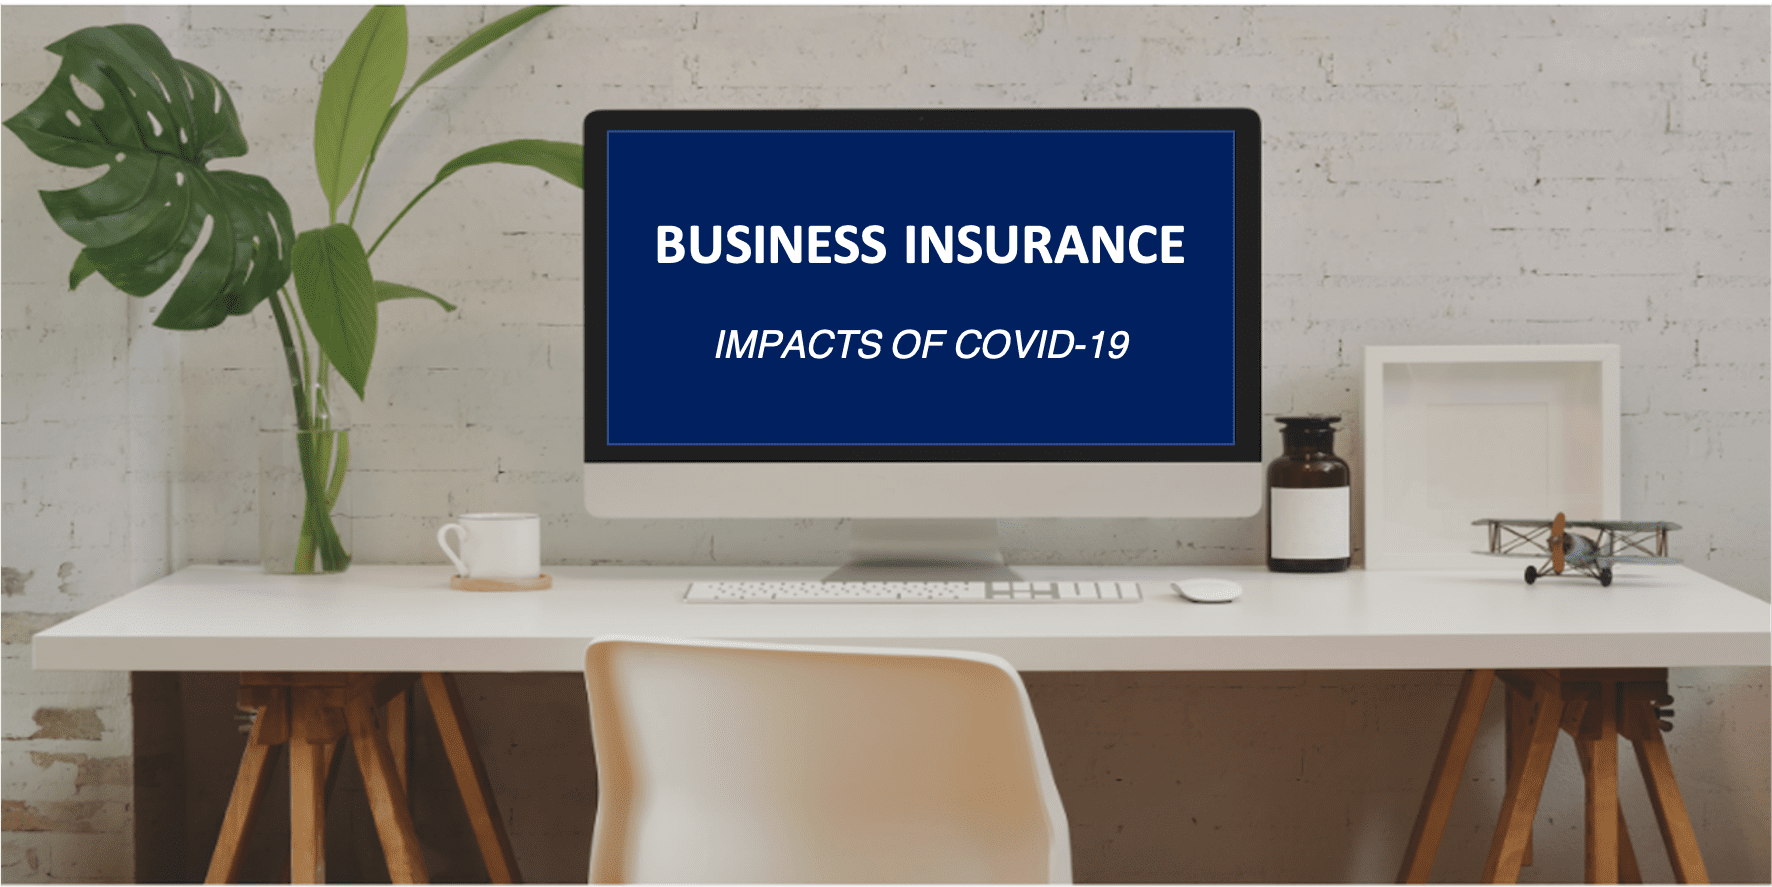 Business insurance: The impacts of COVID-19